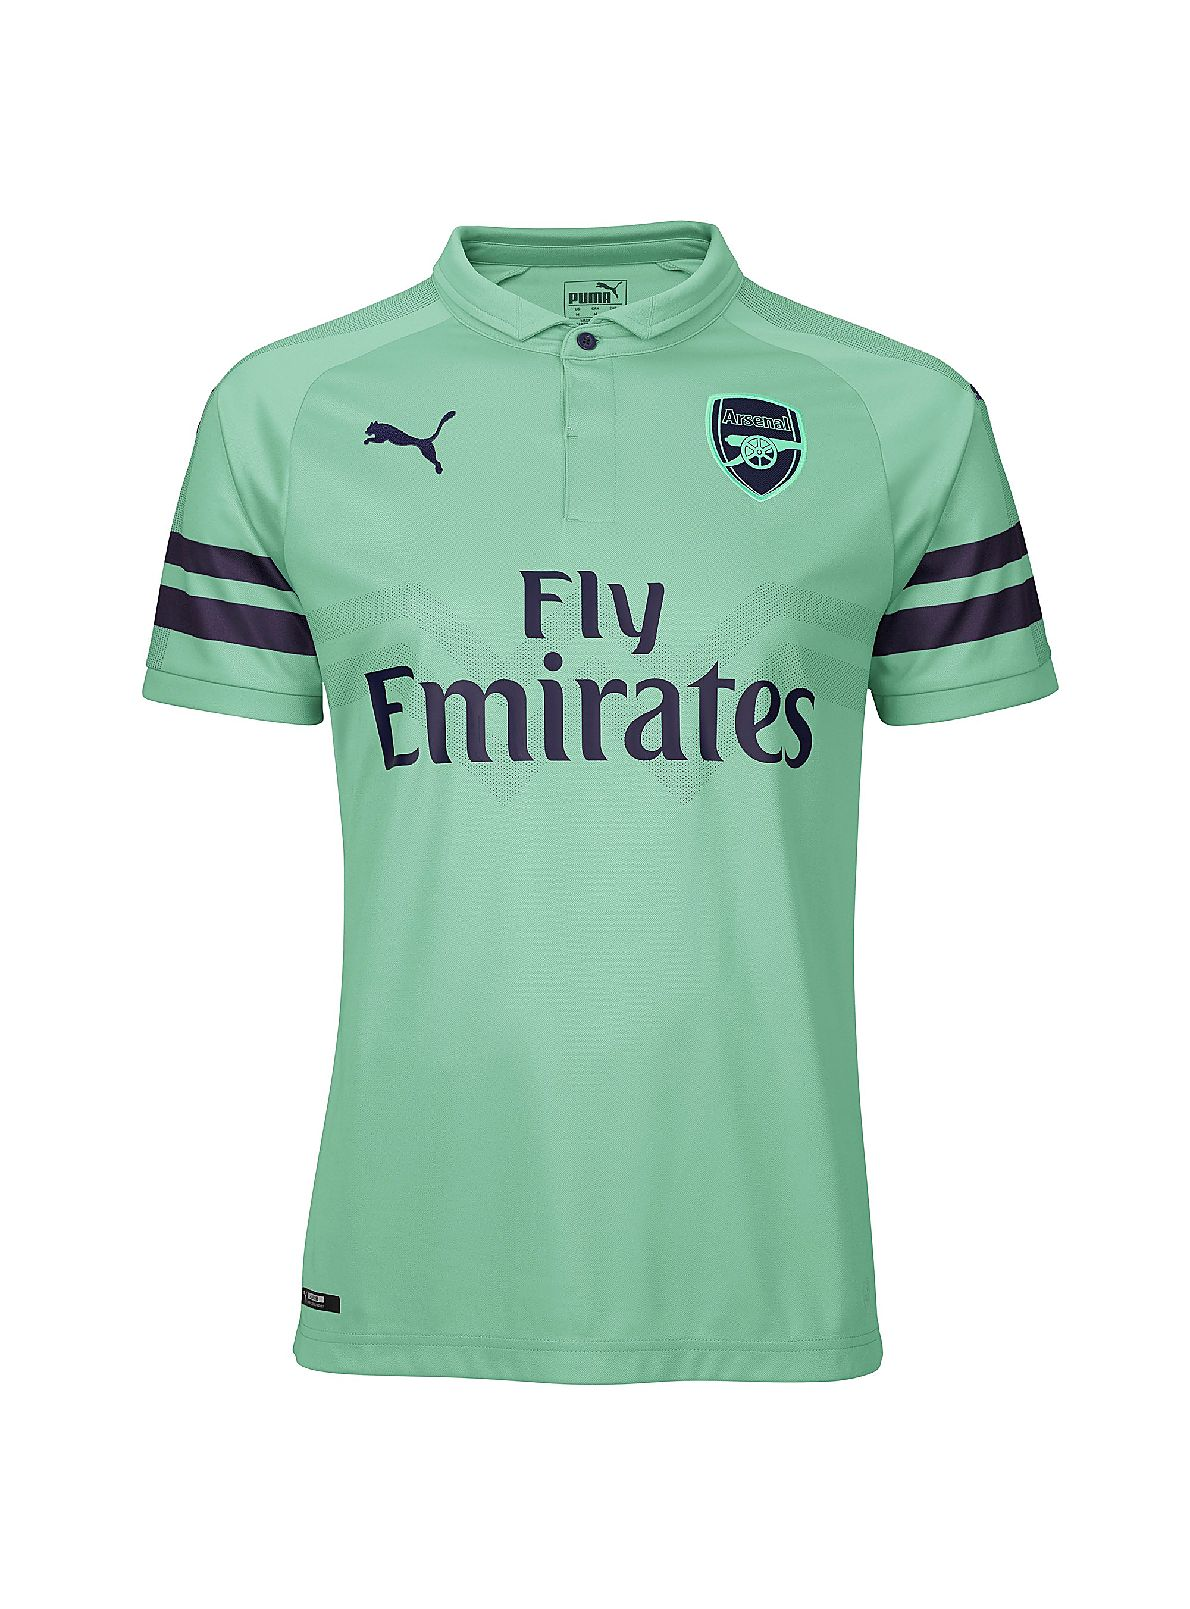 best service 810d8 32163 Arsenal 2018-19 Puma Third Kit | 18/19 Kits | Football shirt ...